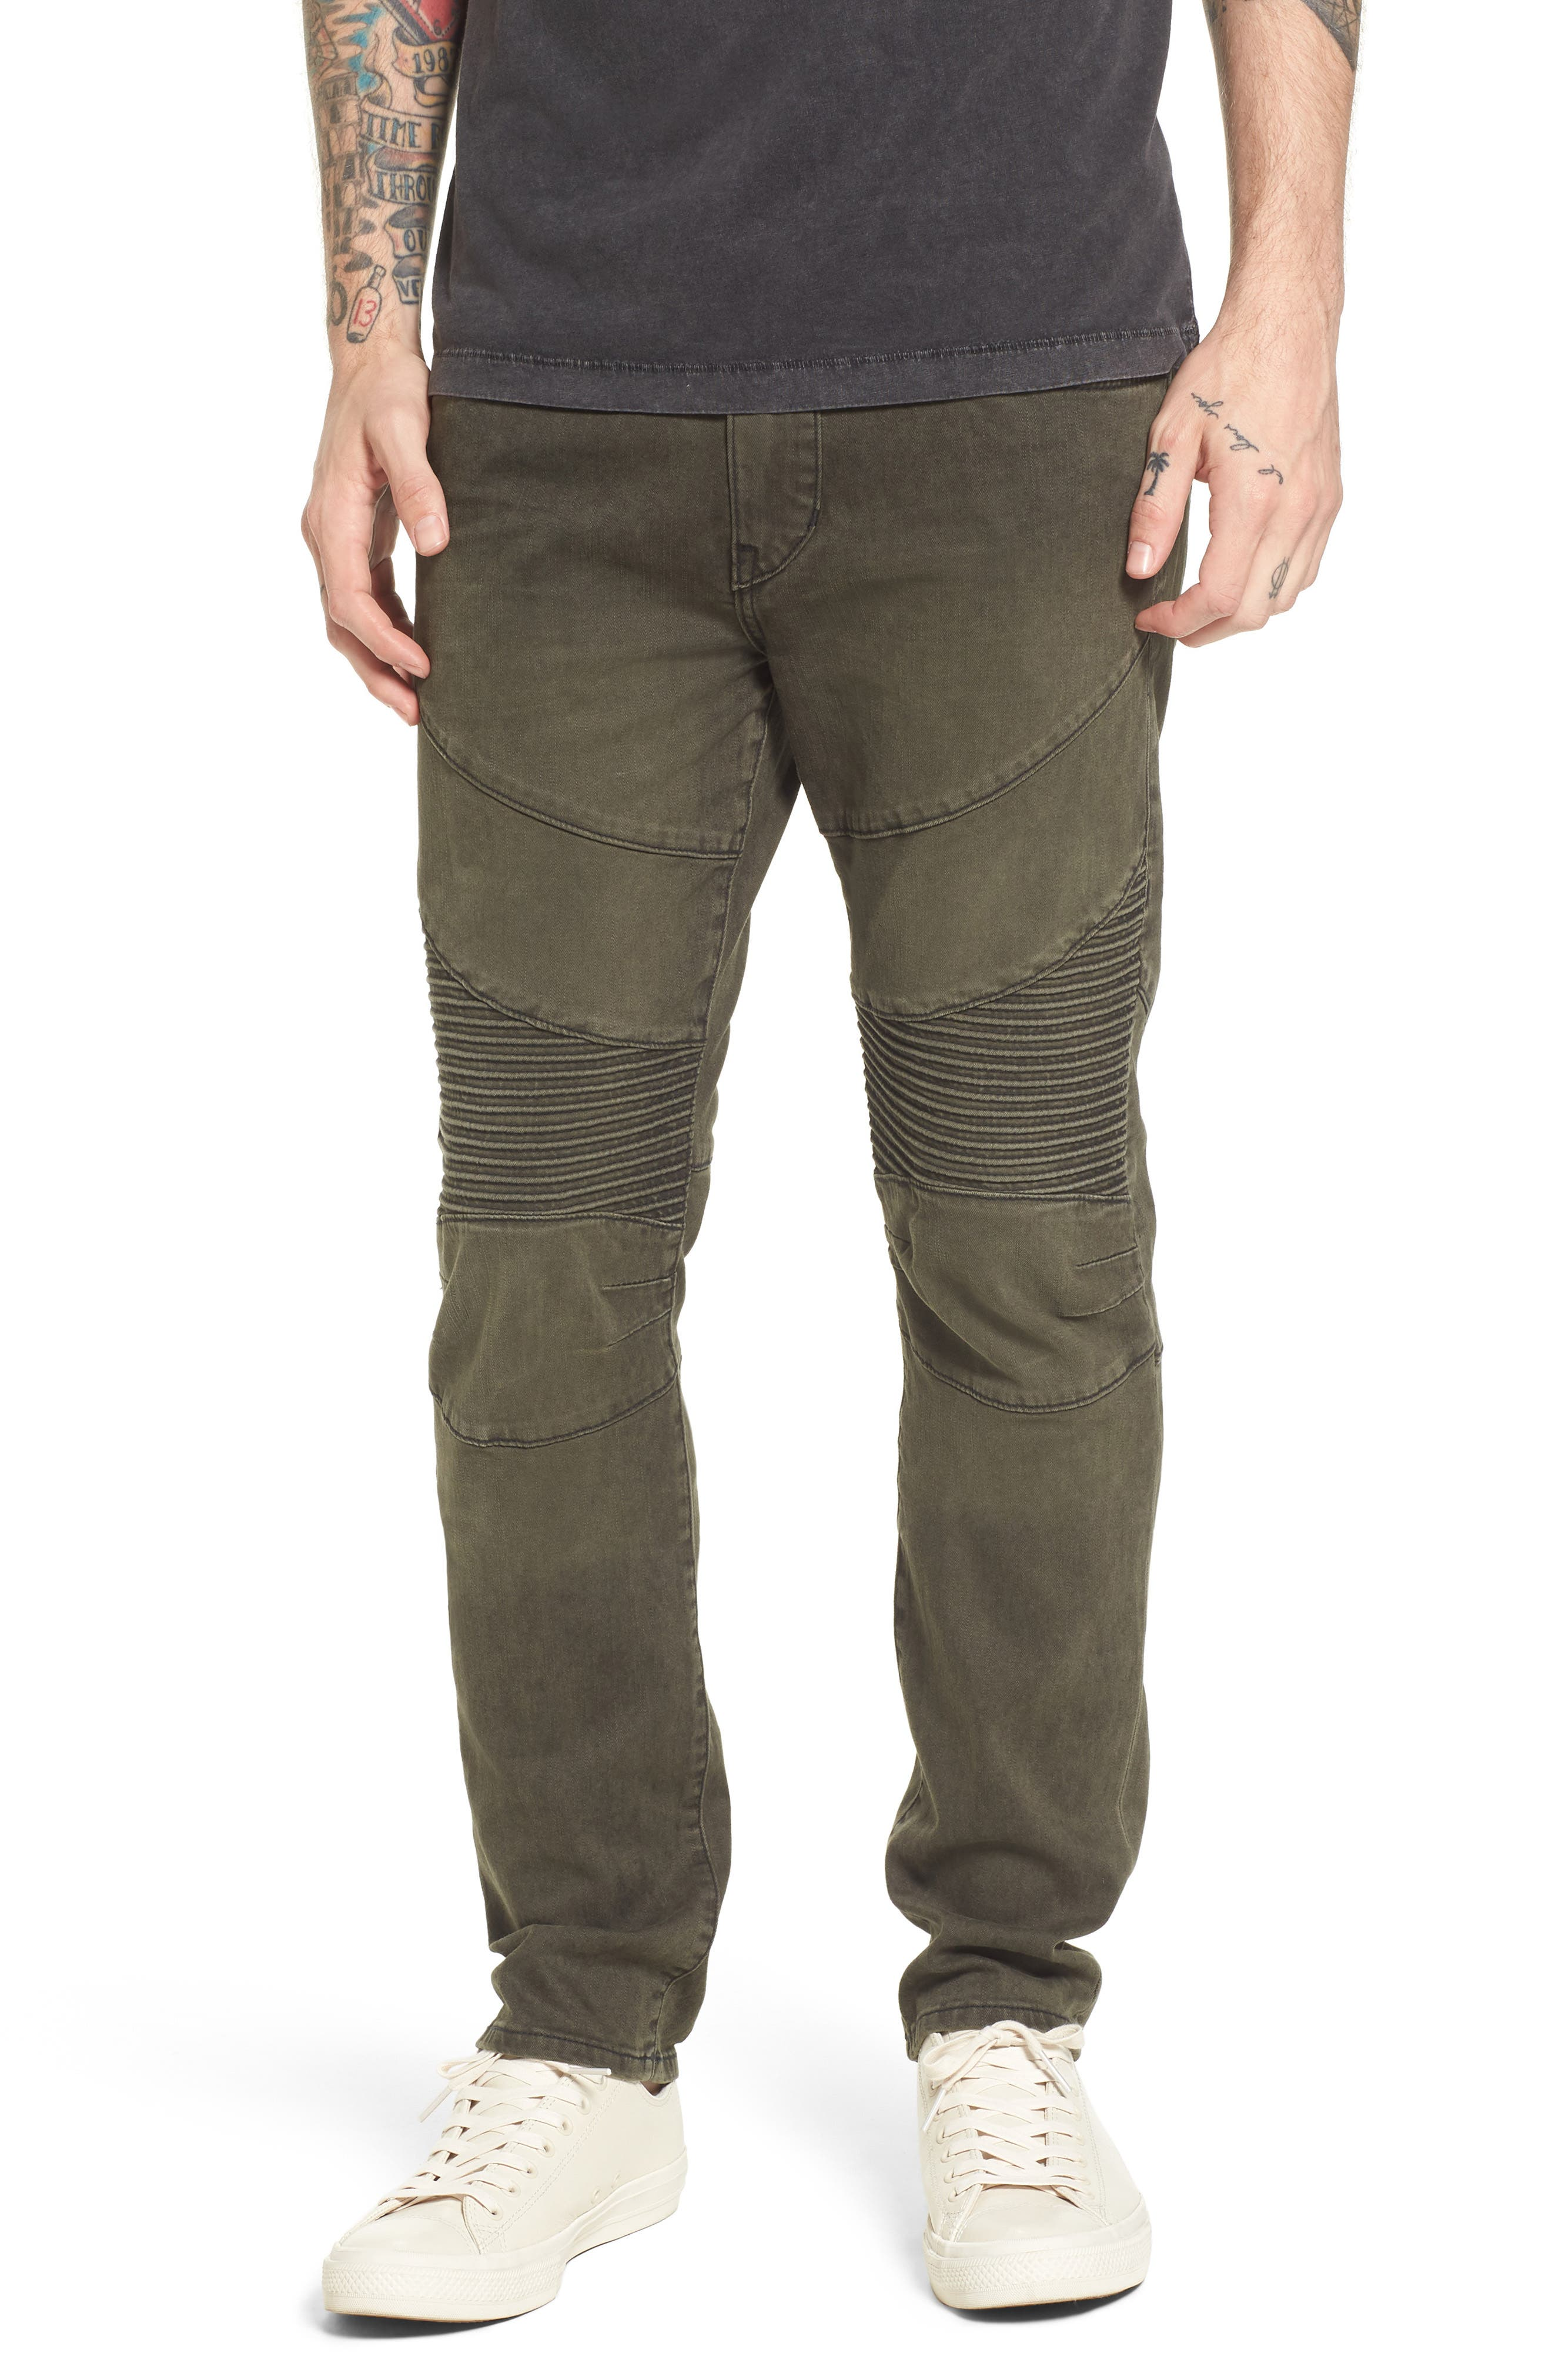 Alternate Image 1 Selected - True Religion Brand Jeans Rocco Skinny Fit Jeans (Olive Coated)